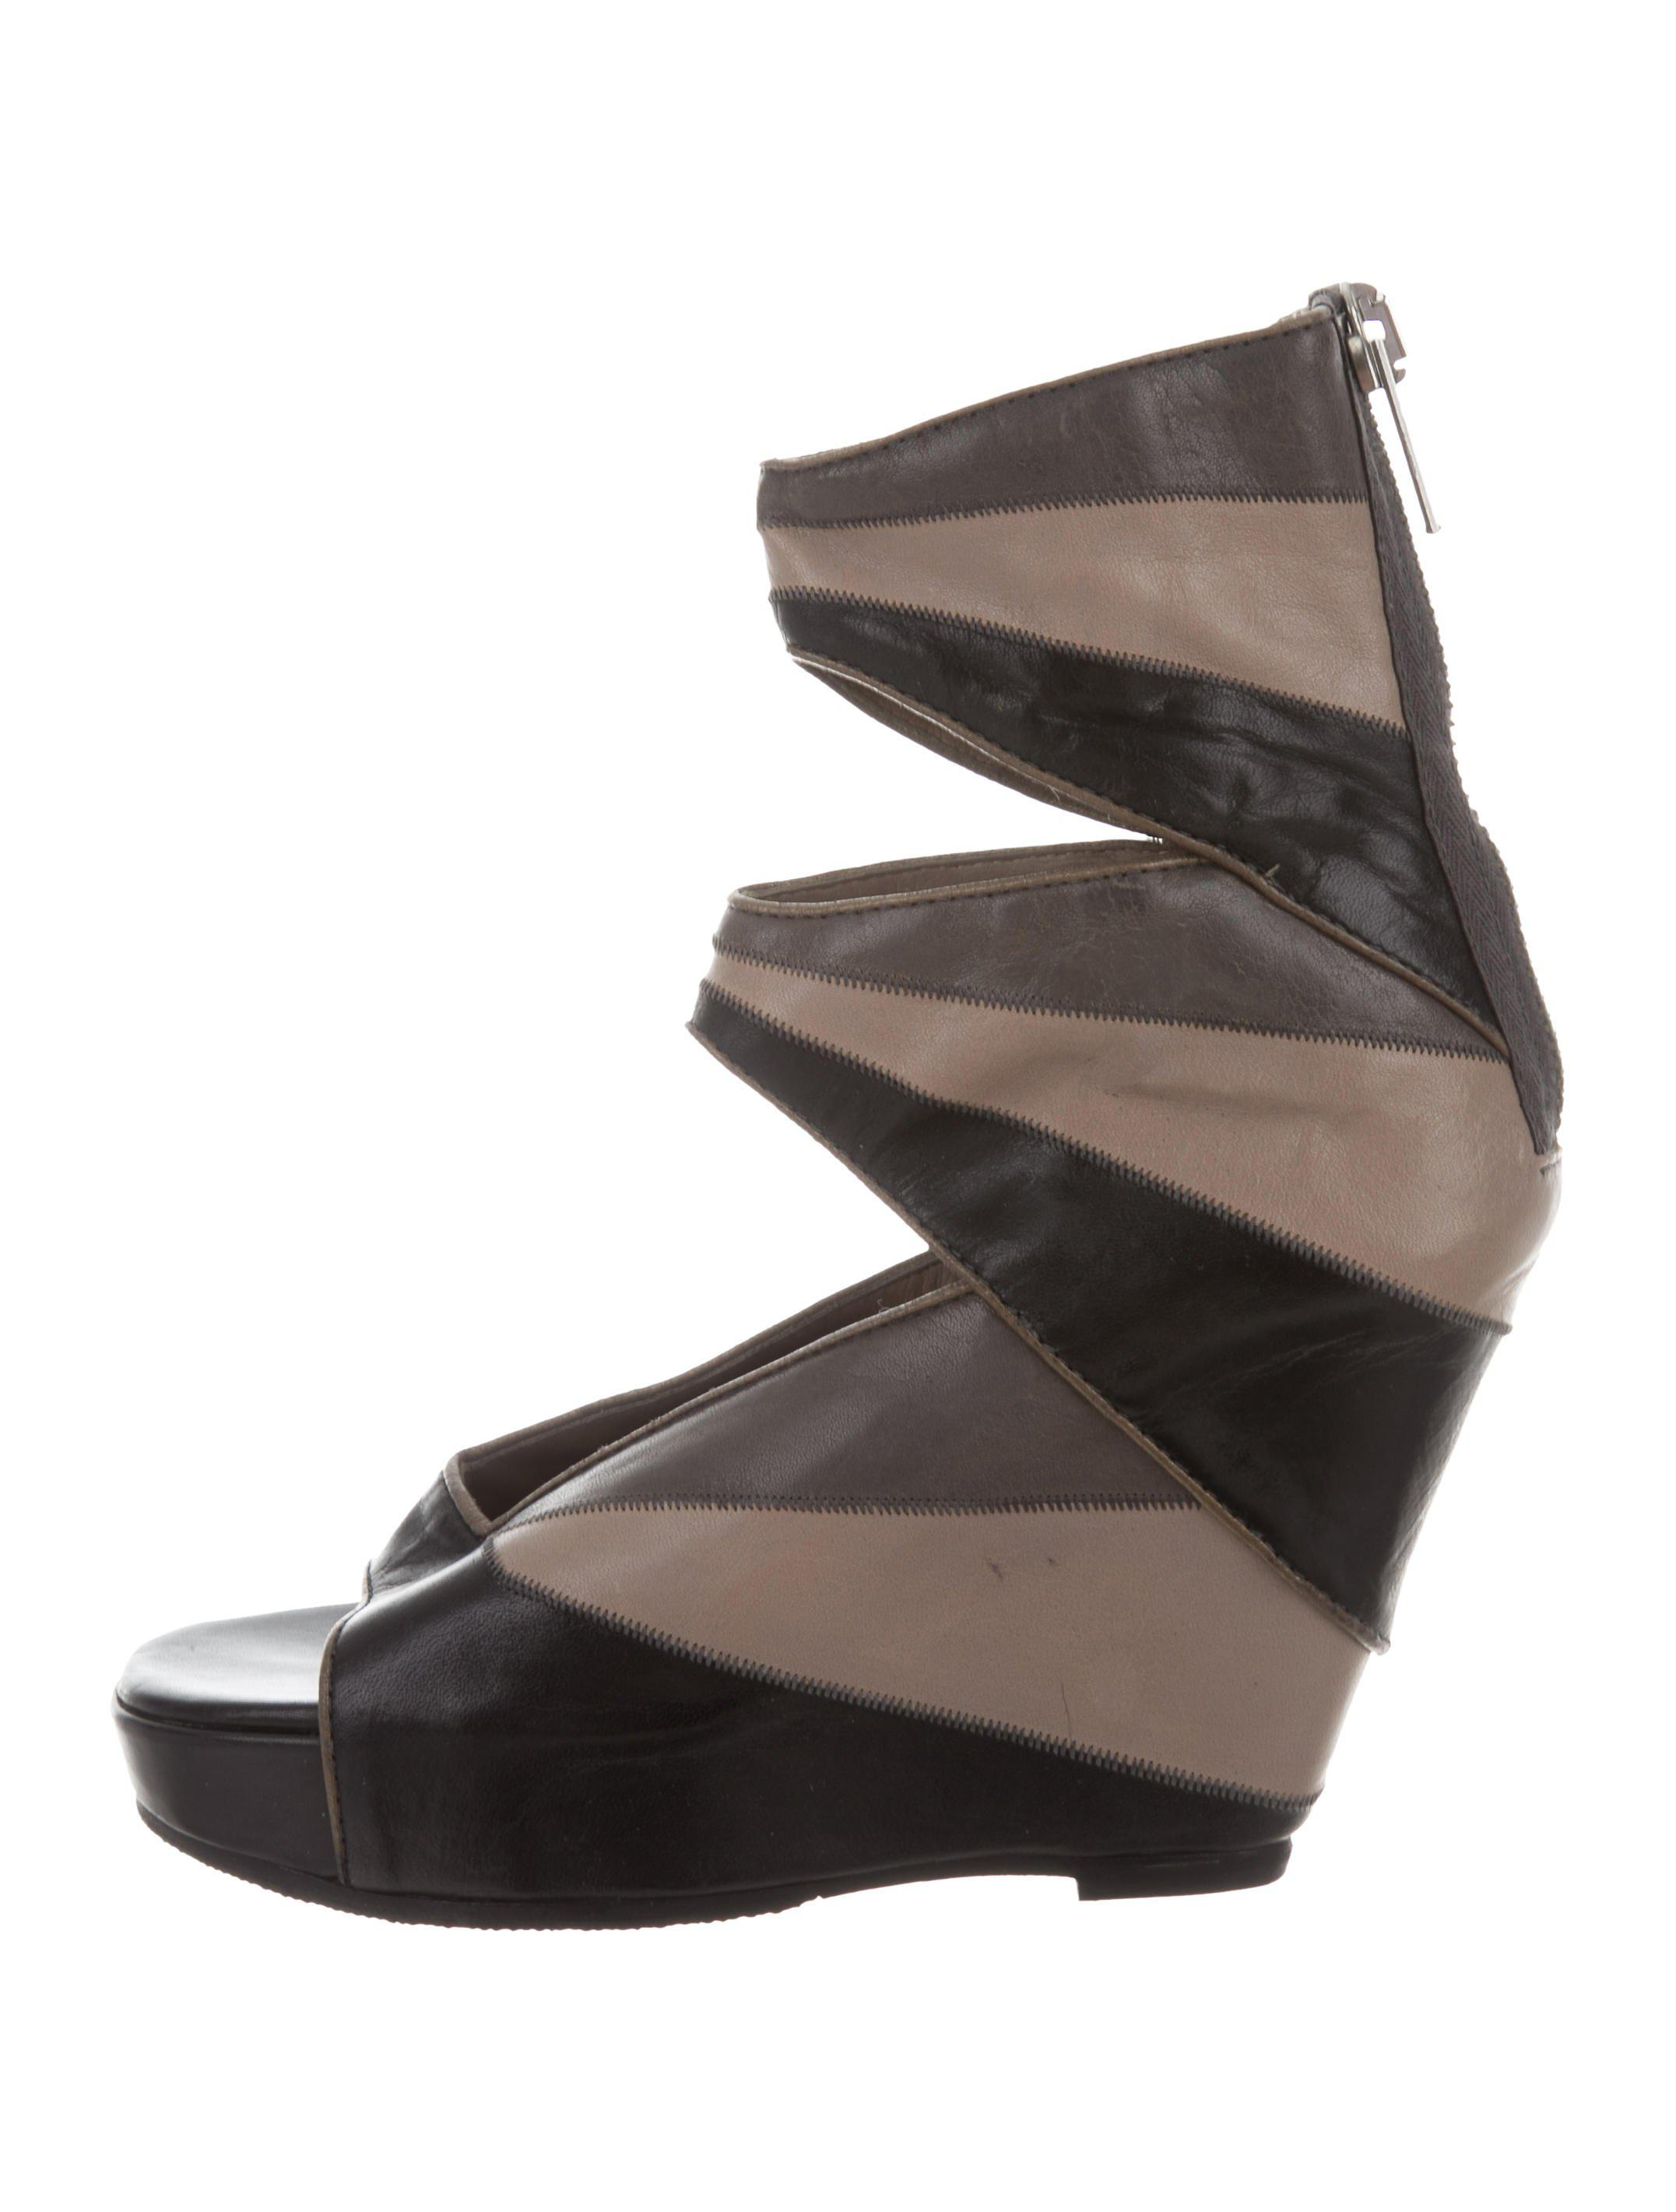 05662acf6a1 Lyst - Rick Owens Leather Knee-high Wedge Sandals Black in Gray